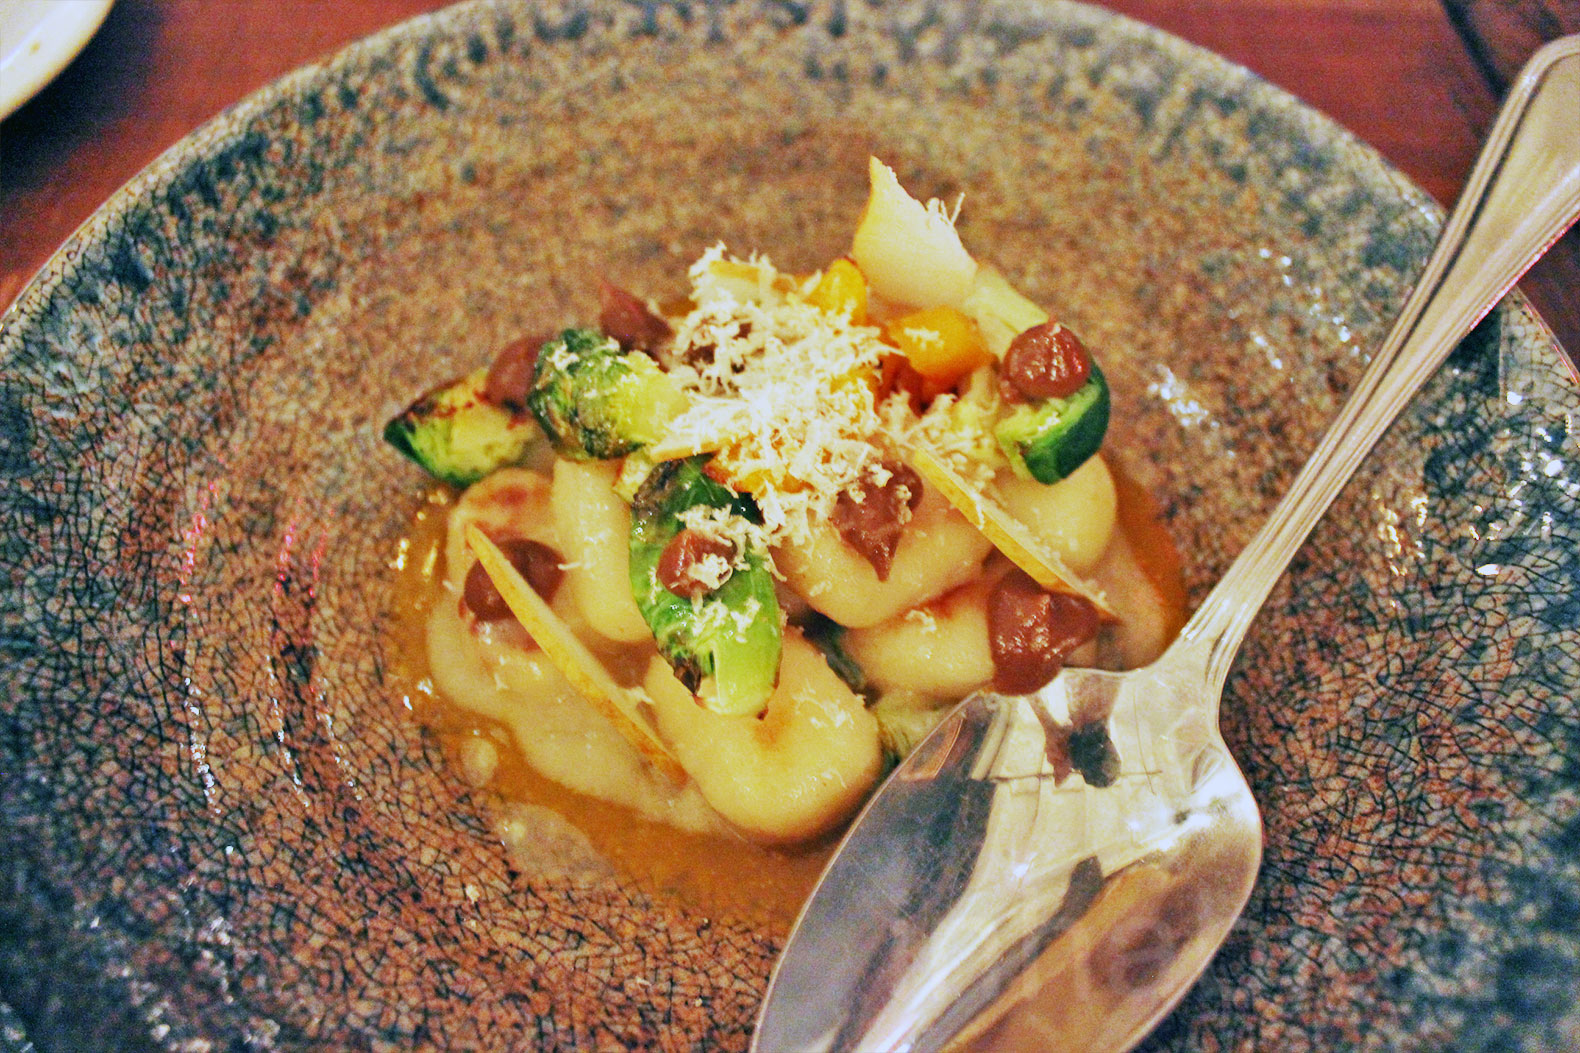 Avant Garden serves up delectable vegan delicacies in a twinkly LES ...